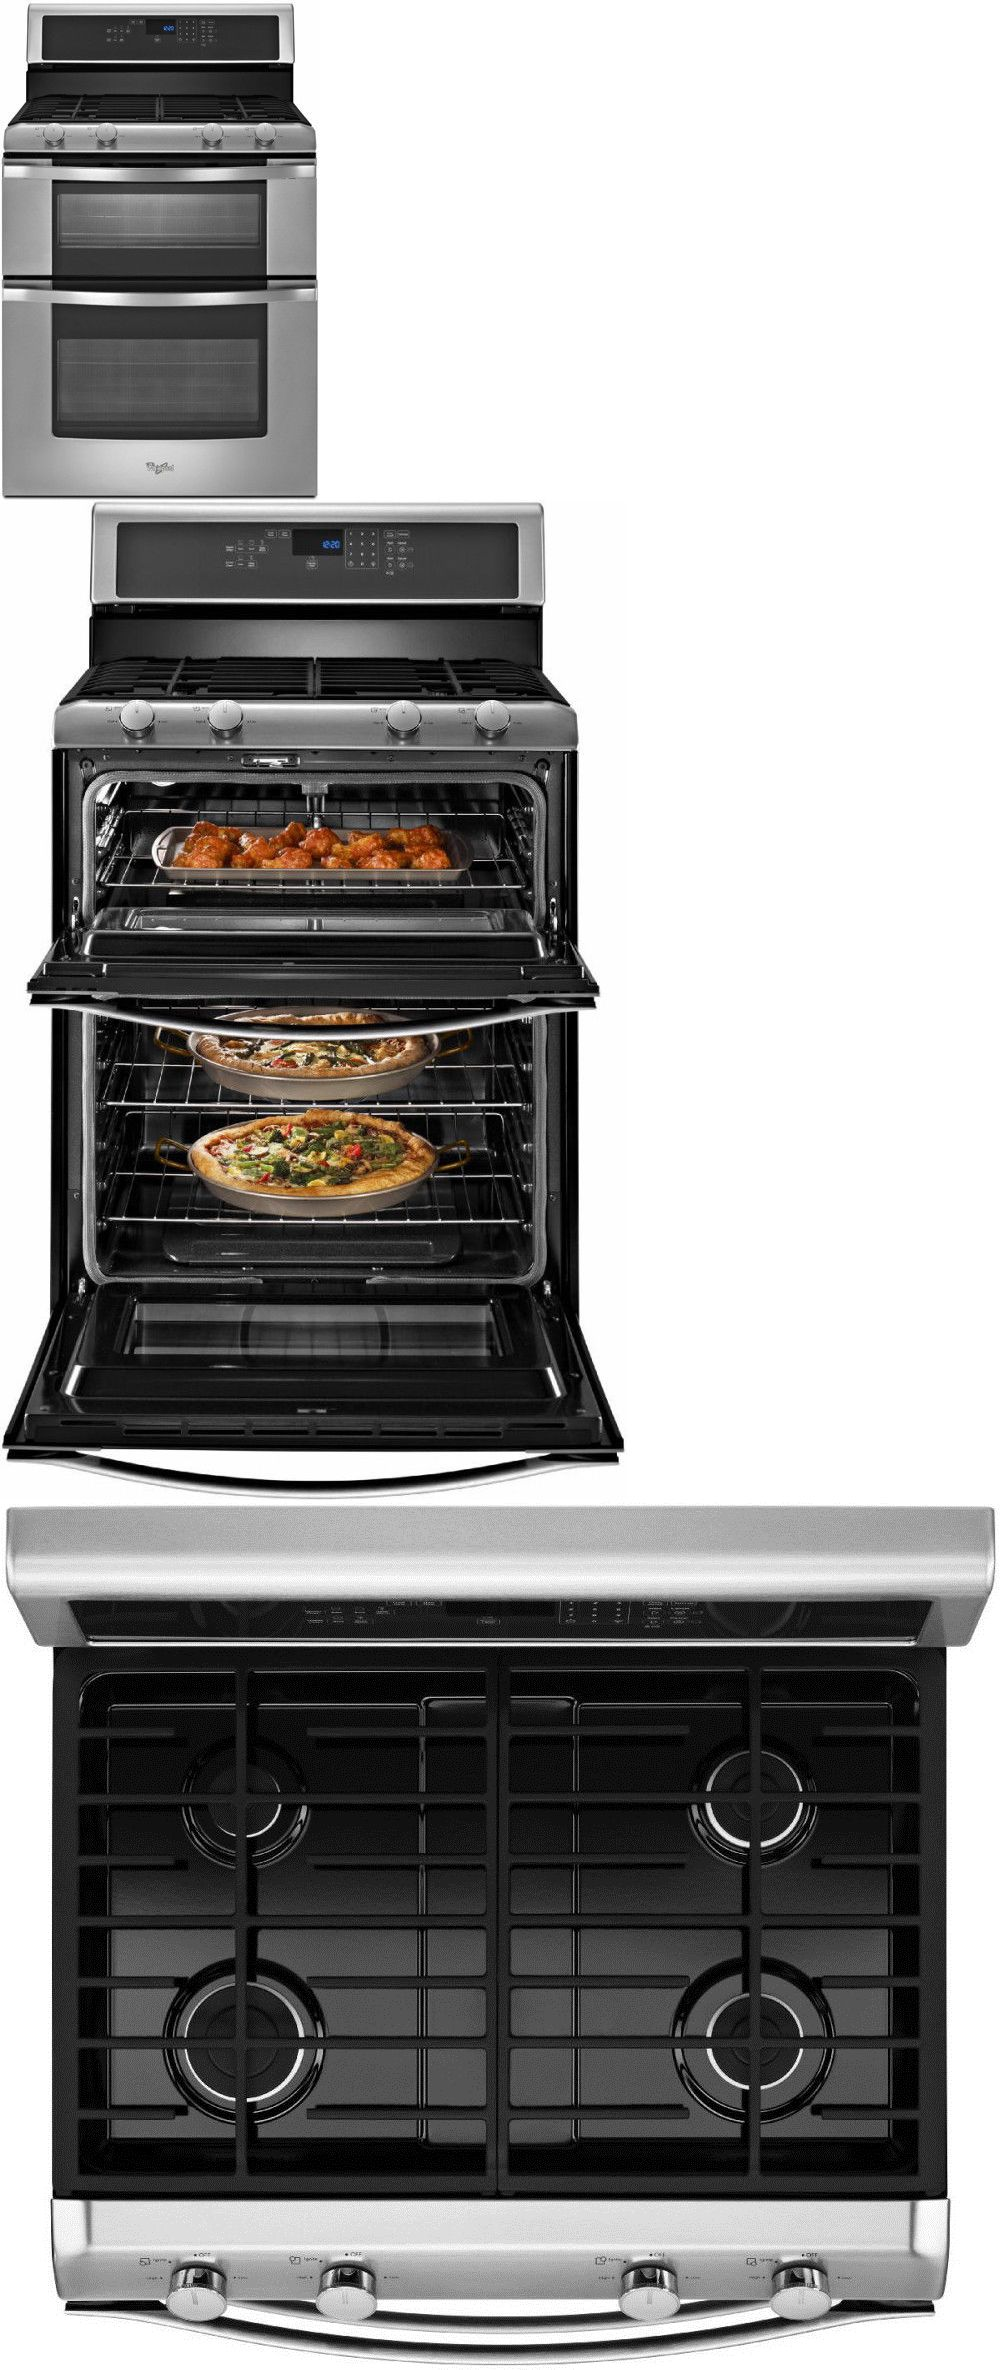 Ranges And Stoves 71250 New Whirlpool Wgg555s0bs 30 Double Oven